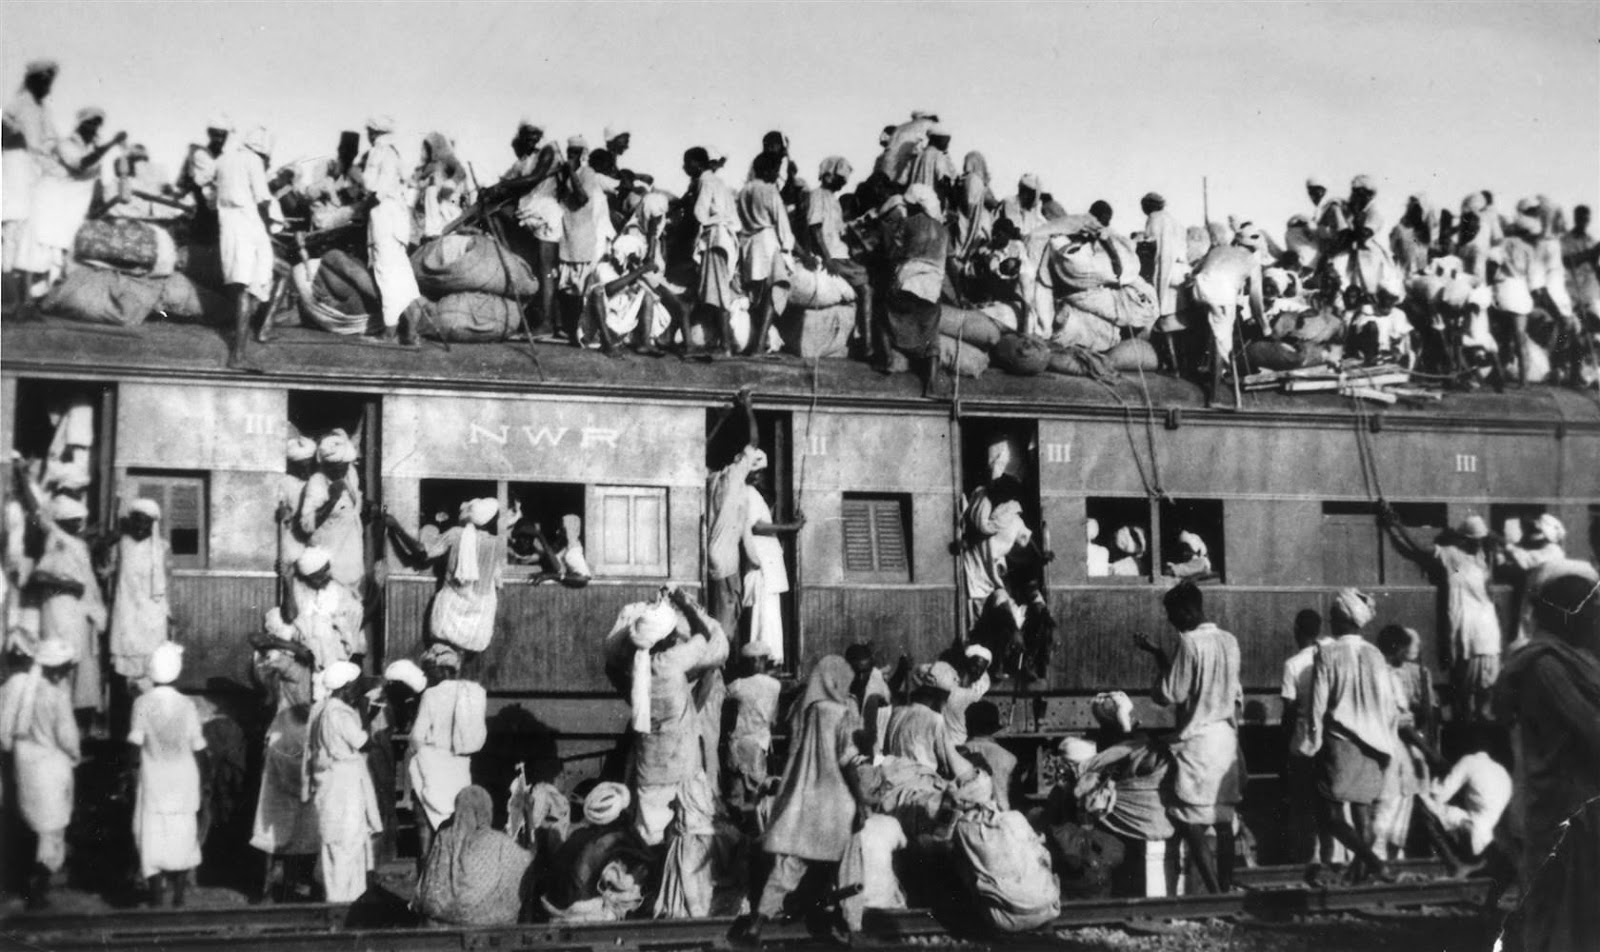 http://media1.s-nbcnews.com/j/newscms/2016_17/1517651/160729-pakistan-india-partition-train_7b42bf9ca0f791809e8cae0599d98ab9.nbcnews-ux-2880-1000.jpg